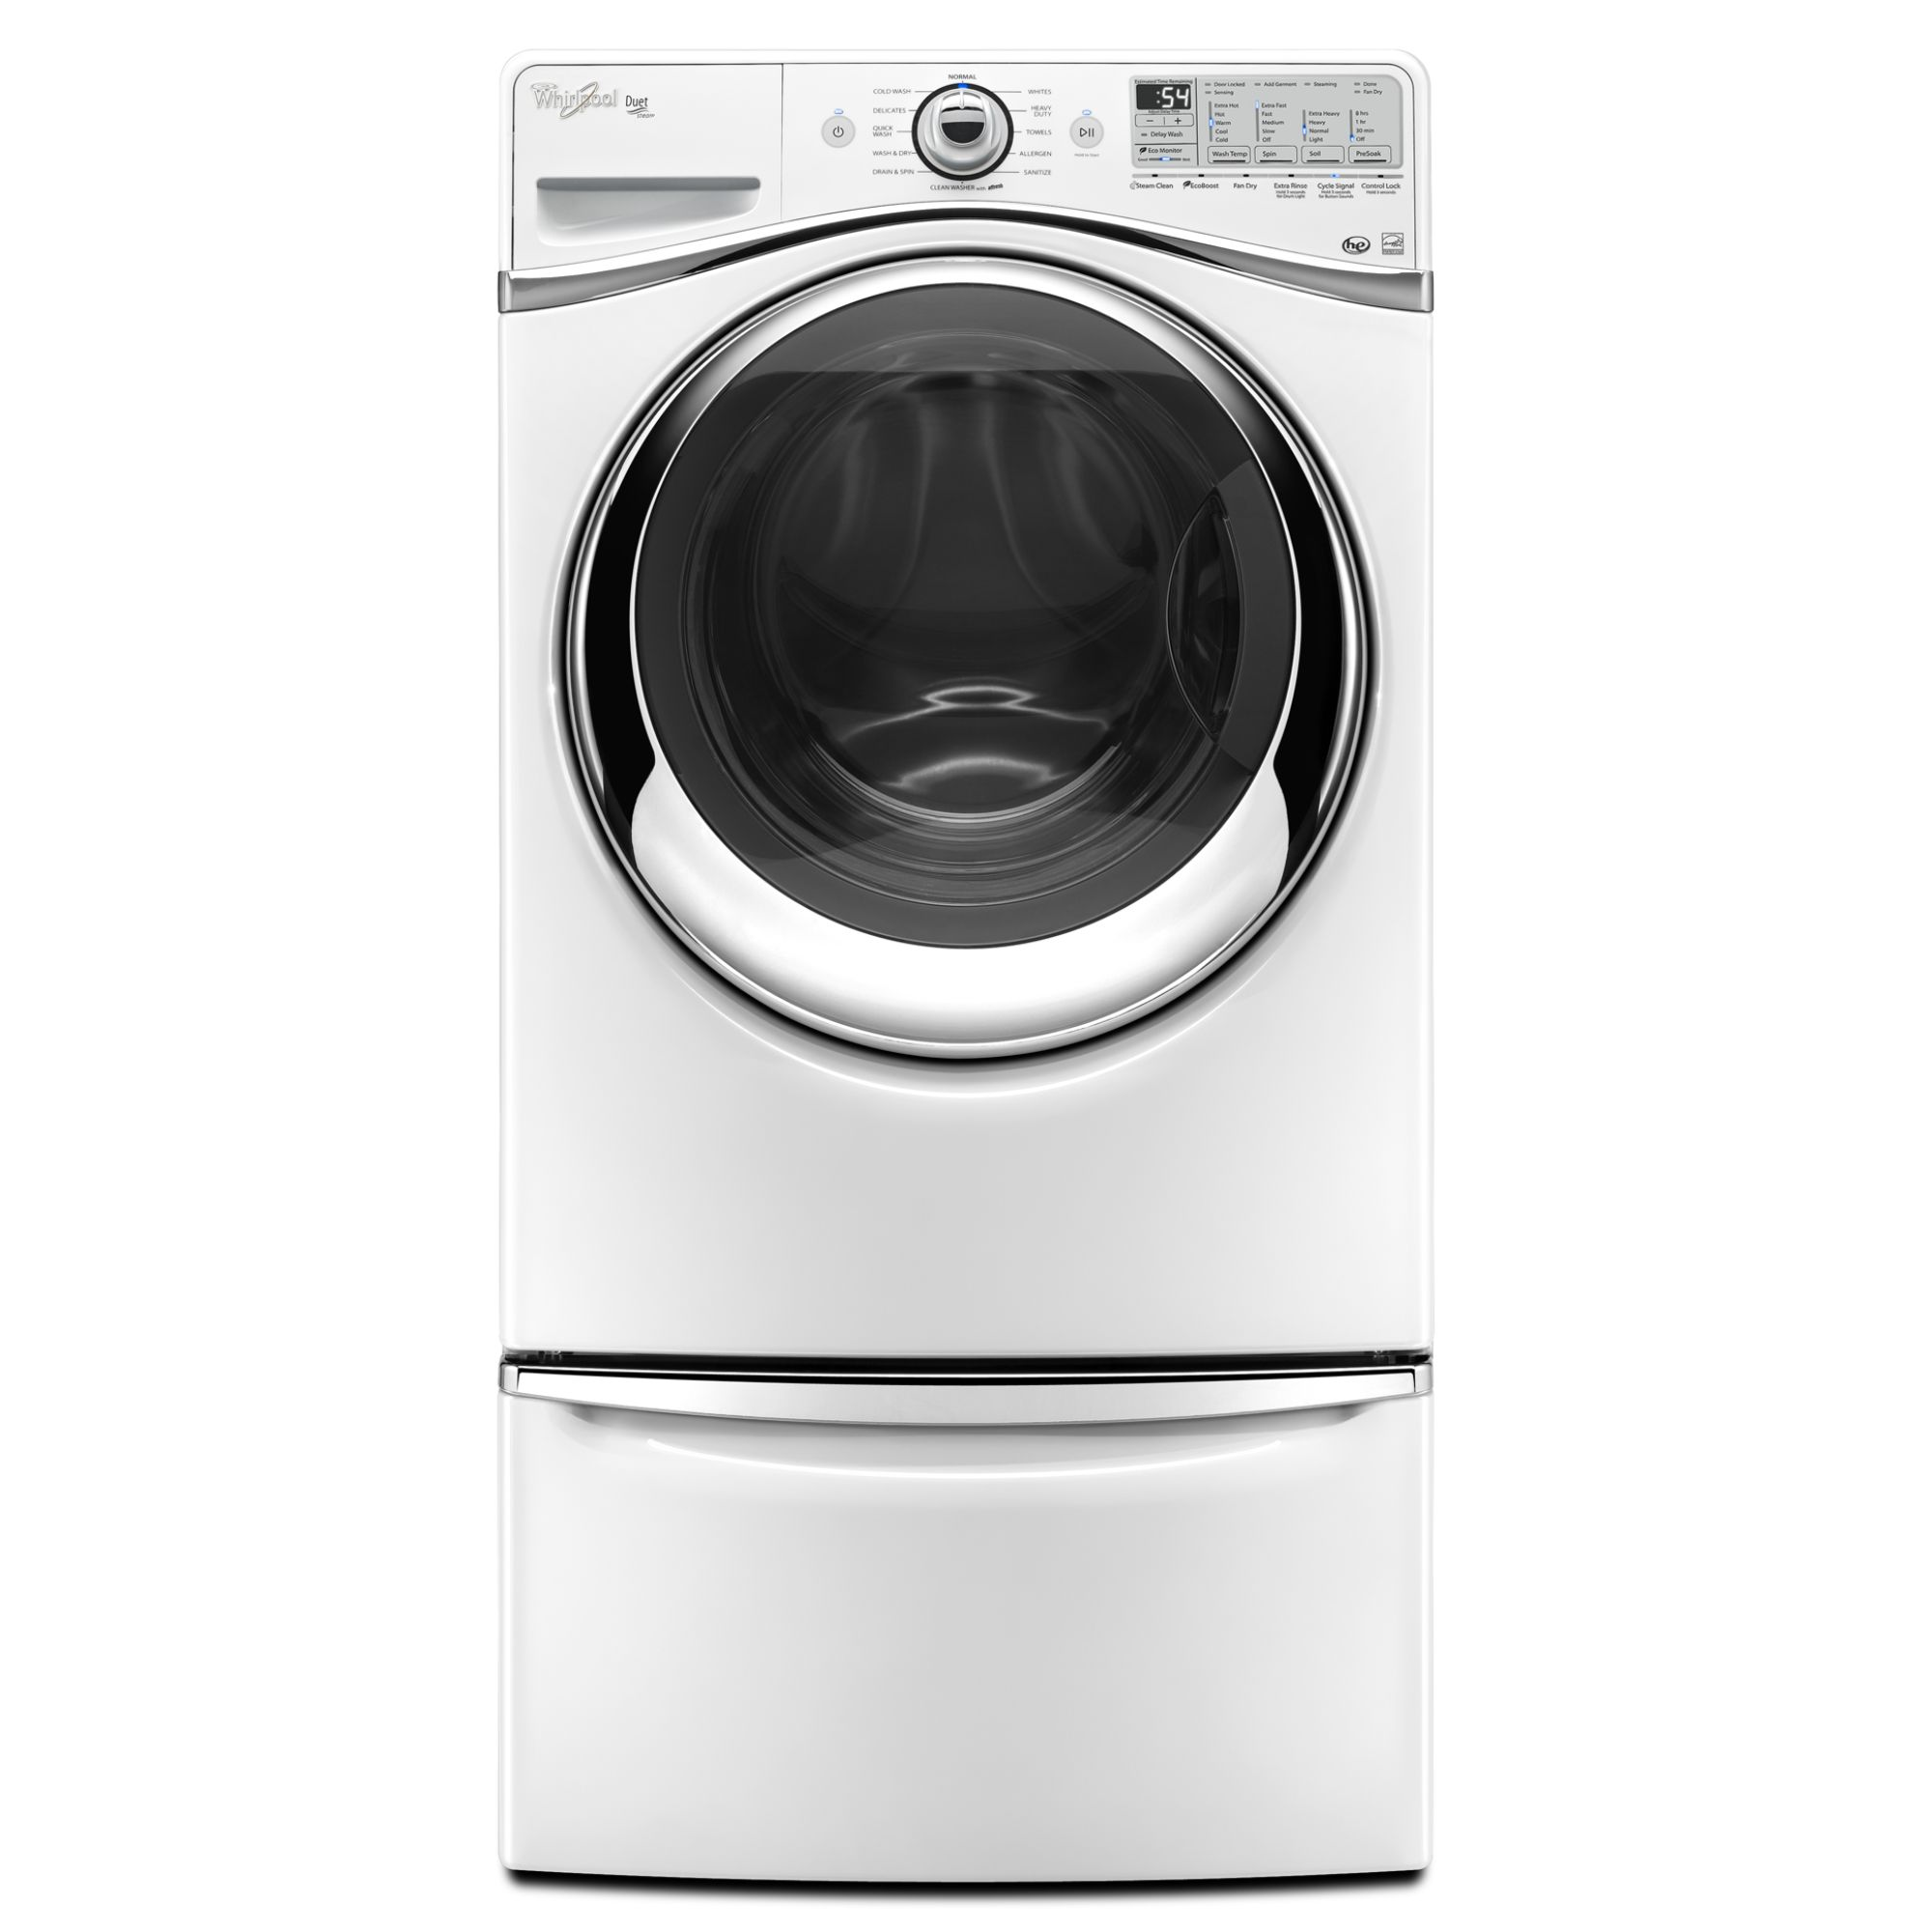 Whirlpool 4.3 cu. ft. Front-Load Washer w/ Precision Dispense - White